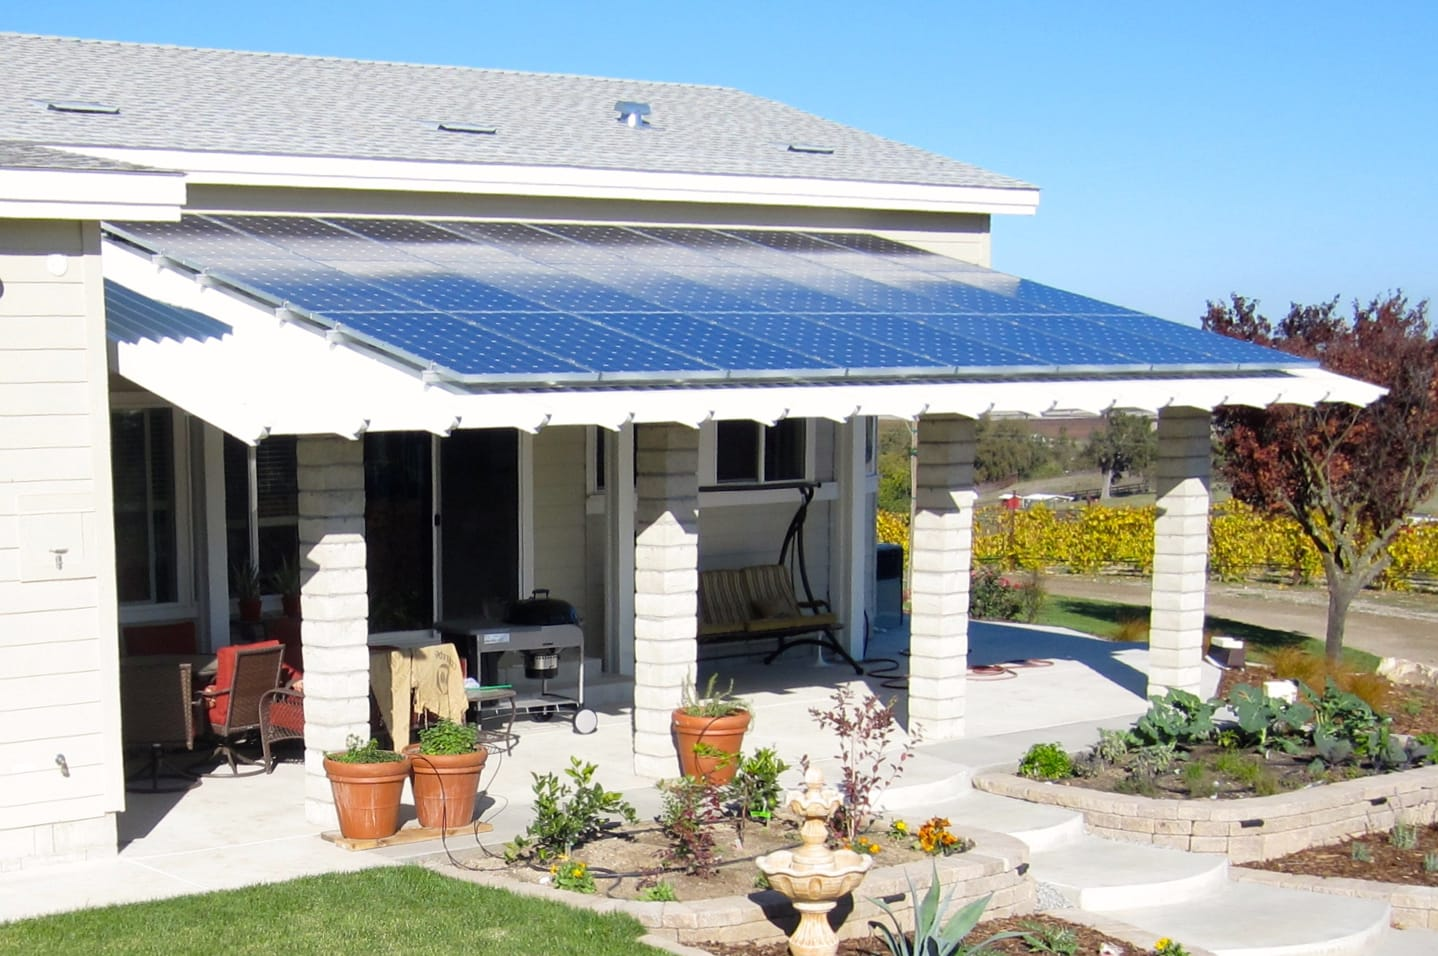 Alumashade DIY Solid Non-Insulated Patio Cover with Solar Panels